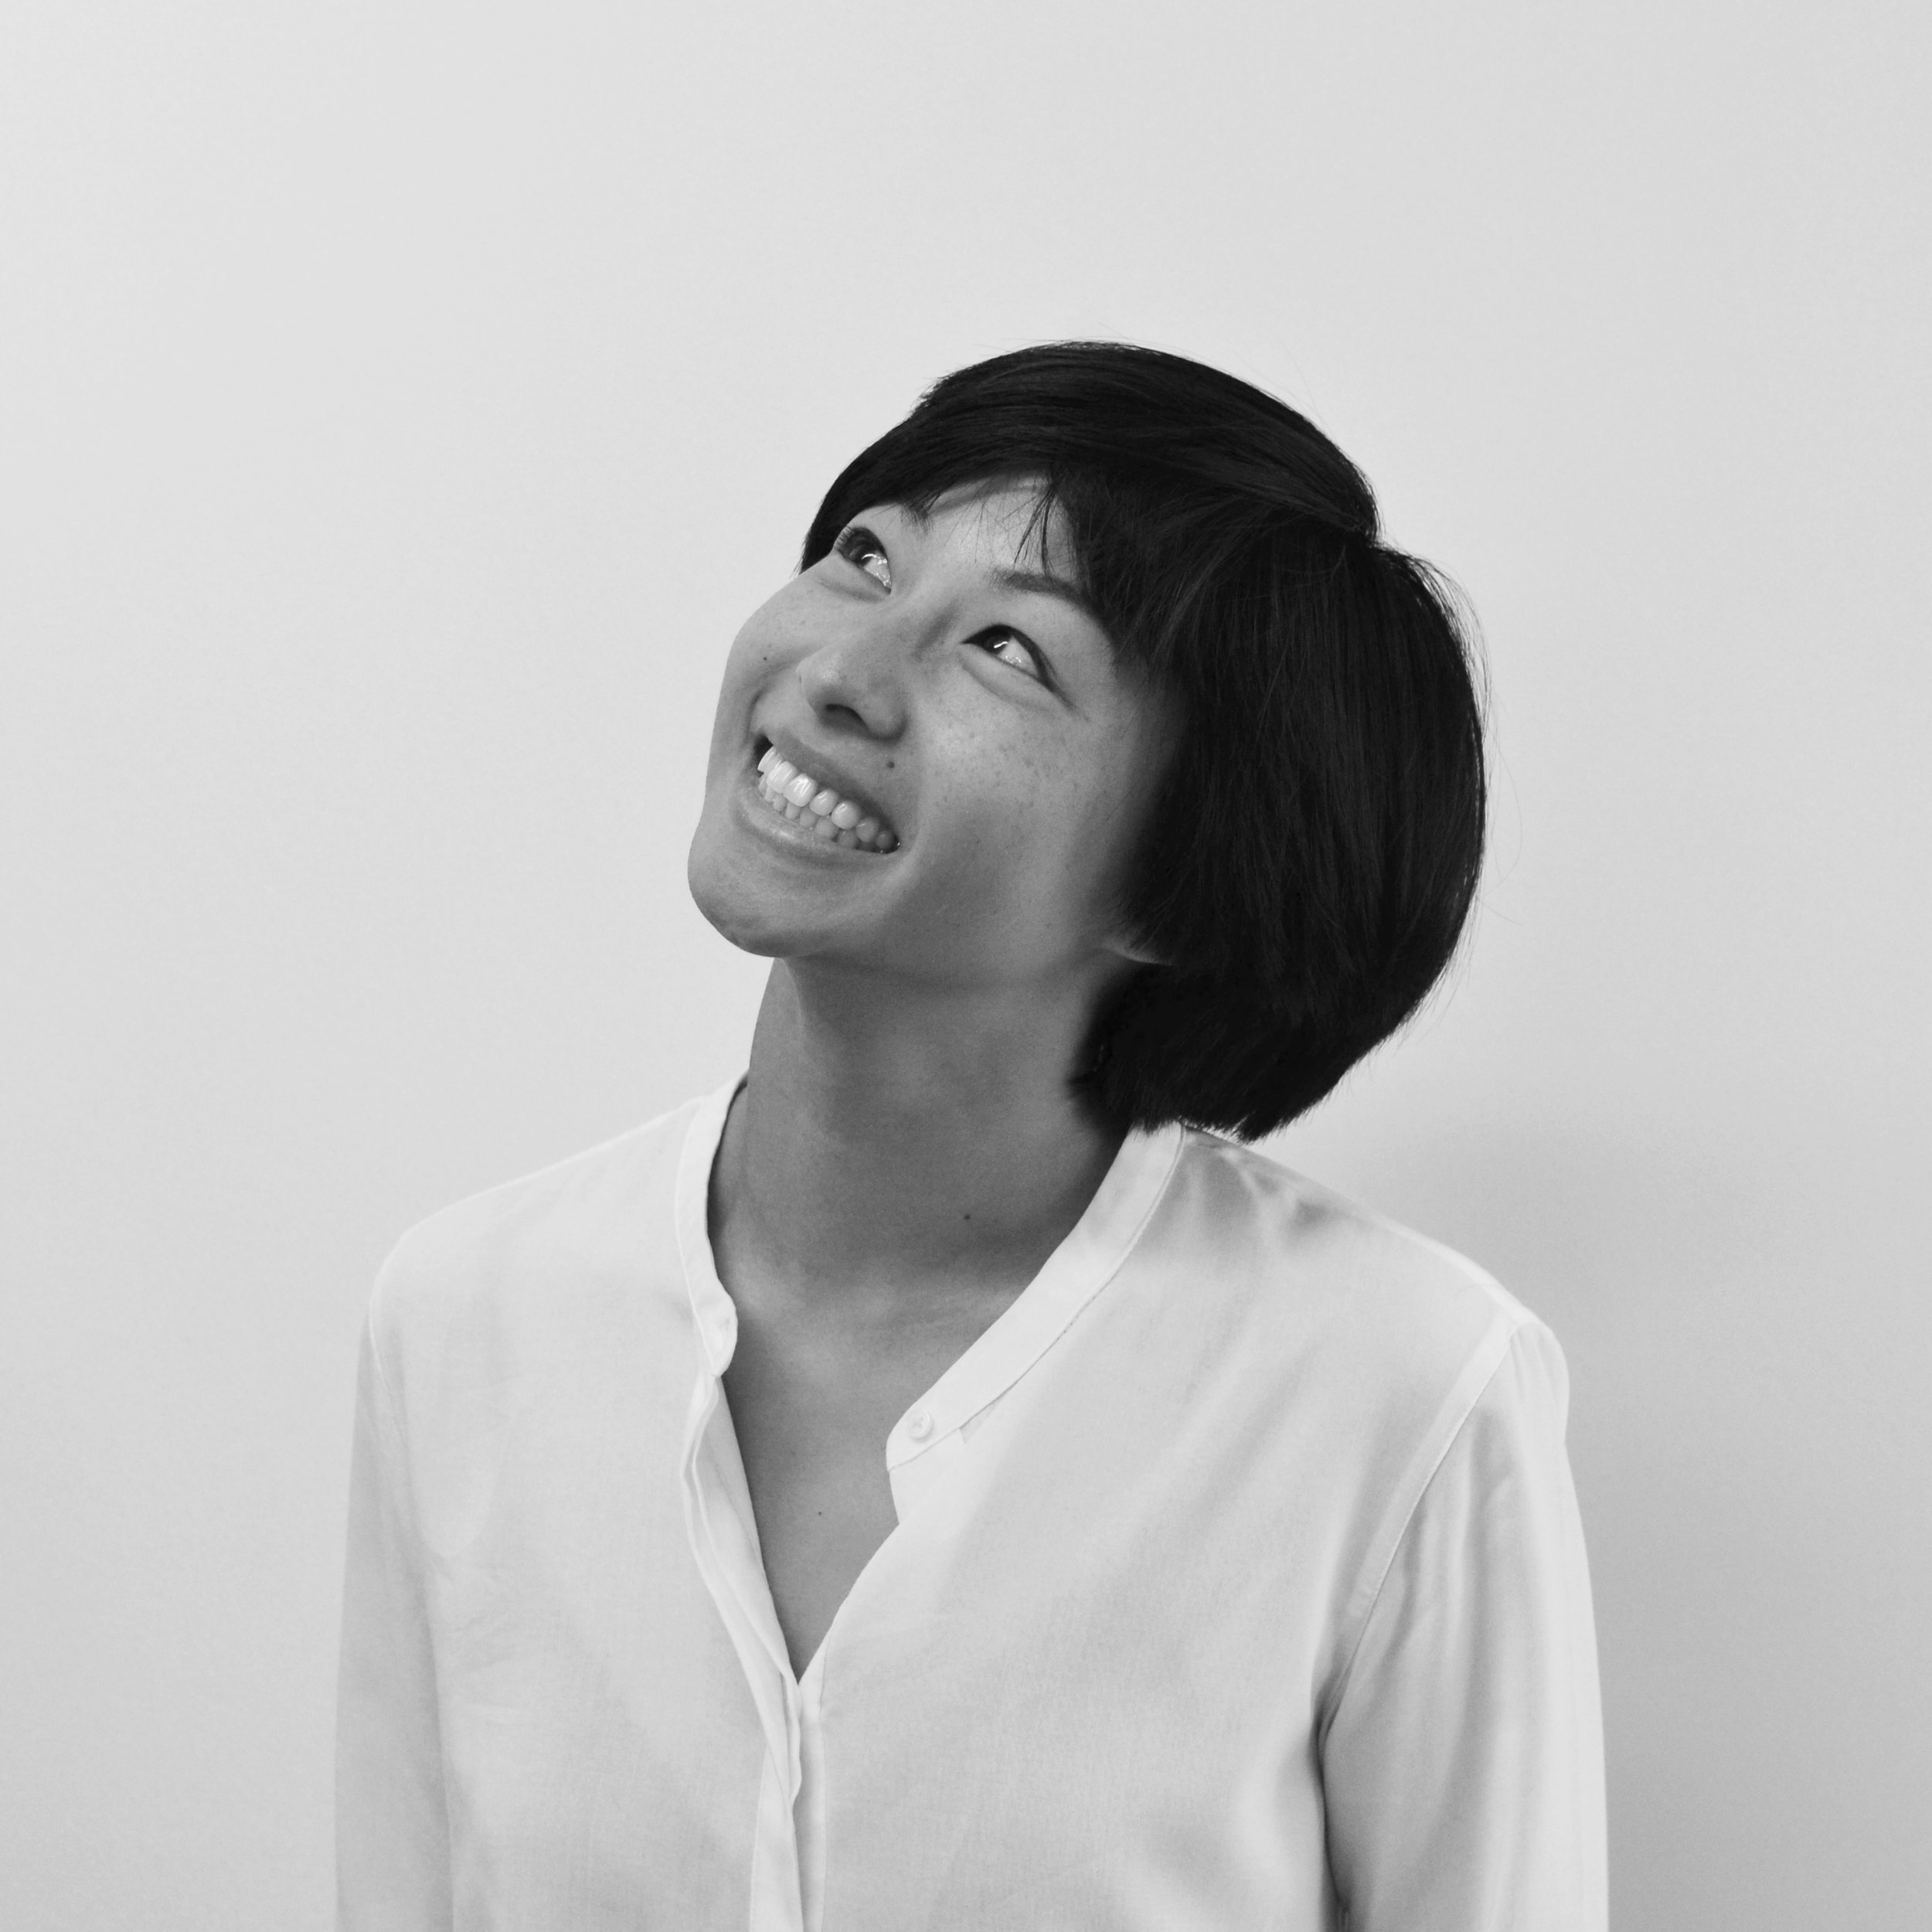 Jennifer Tu-Anh Phan  —Architectural Designer  Having studied architecture and urban planning, Jennifer now works as a designer at Atelier L'Abri. Through her work experiences in Paris, Rome, New York and Toronto, she has witnessed radically different architectural practices and now wants to reinvest in her hometown. She perceives space as being out-of-singular and seeks to celebrate the diversity and ambiguity present in our living environments. Her work as an artist-architect is dedicated to thinking space in its transversality, both disciplinary and cultural.